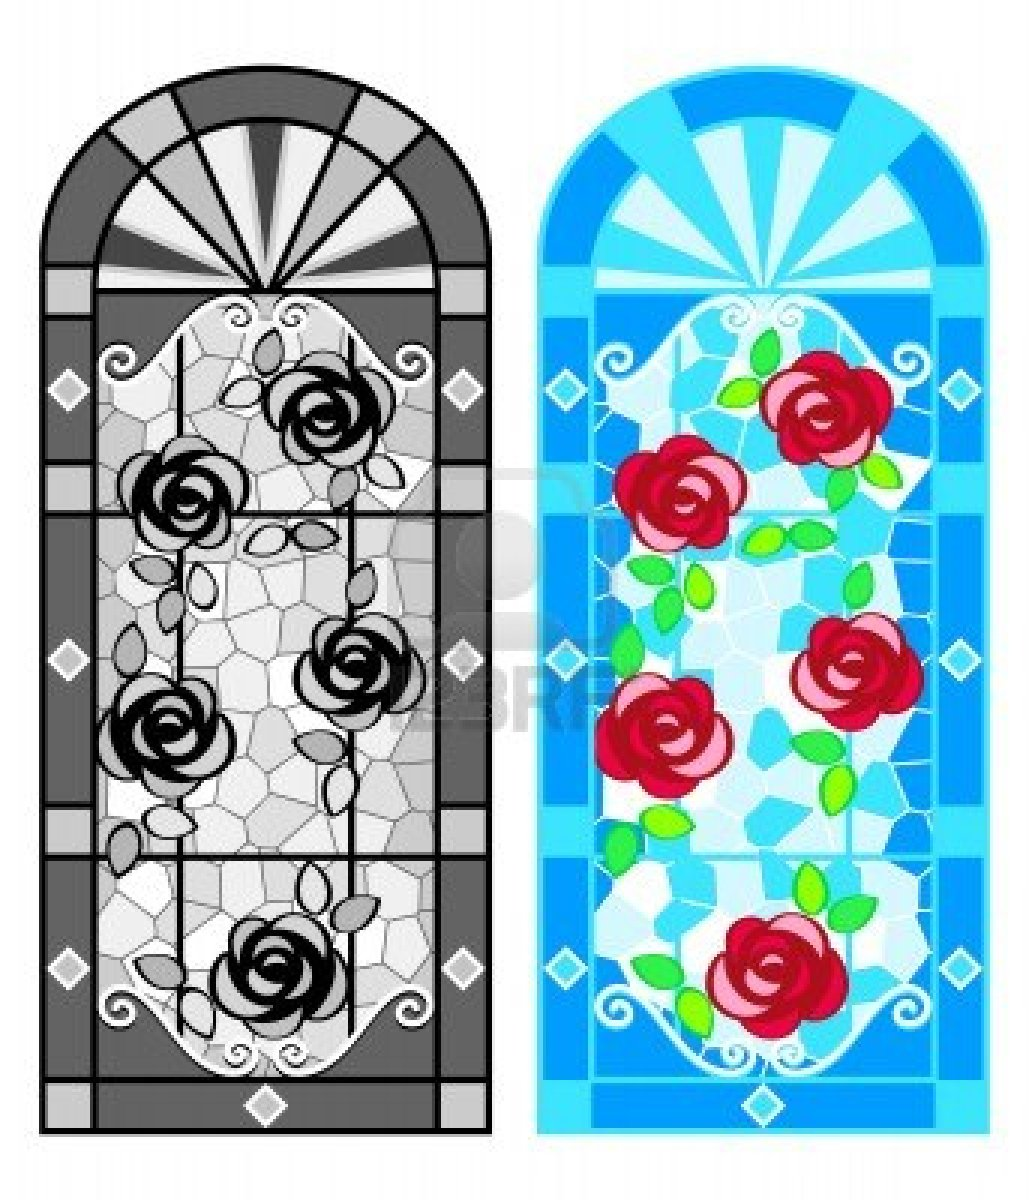 free clipart stained glass window - photo #9